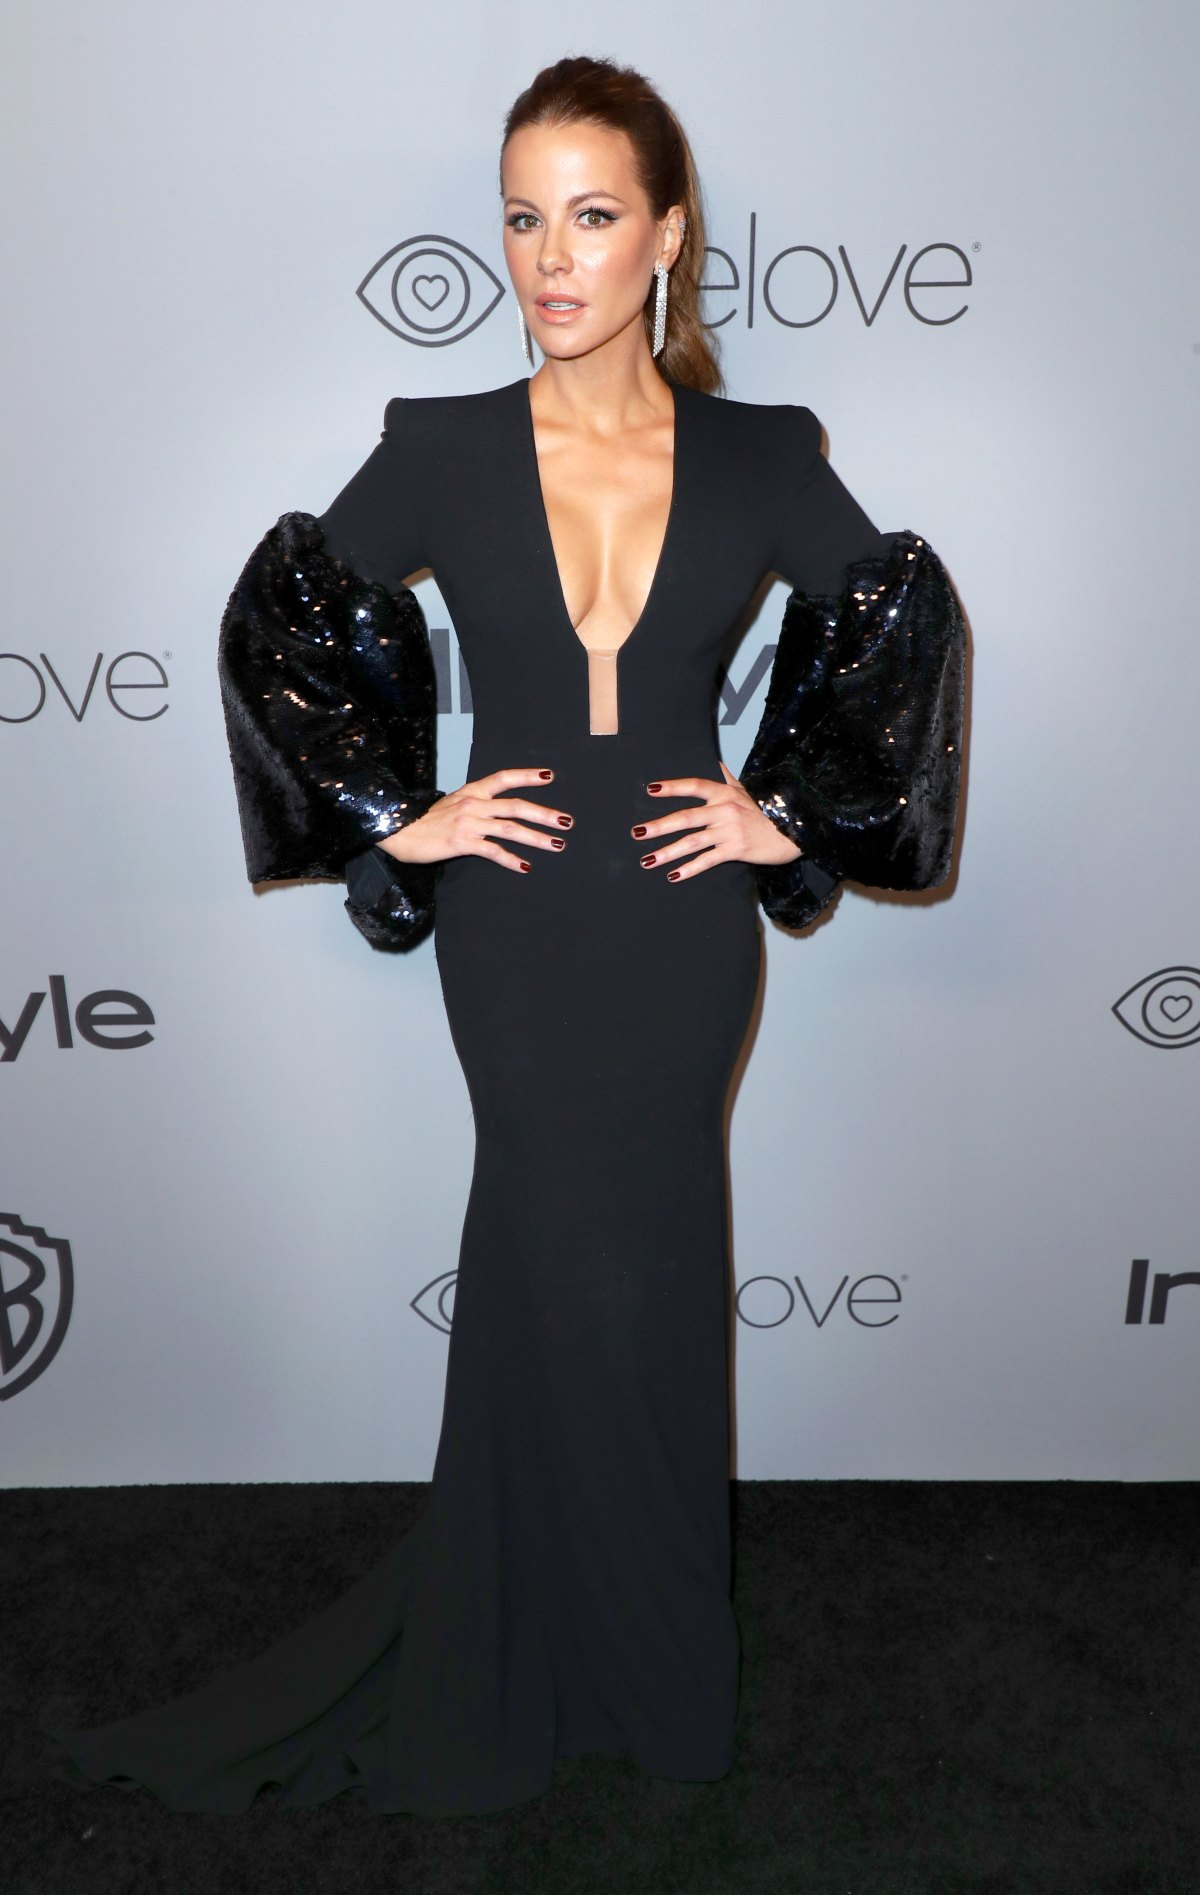 Golden Globes 2018 Afterparty Fashion: See Stars\' Dresses, Gowns